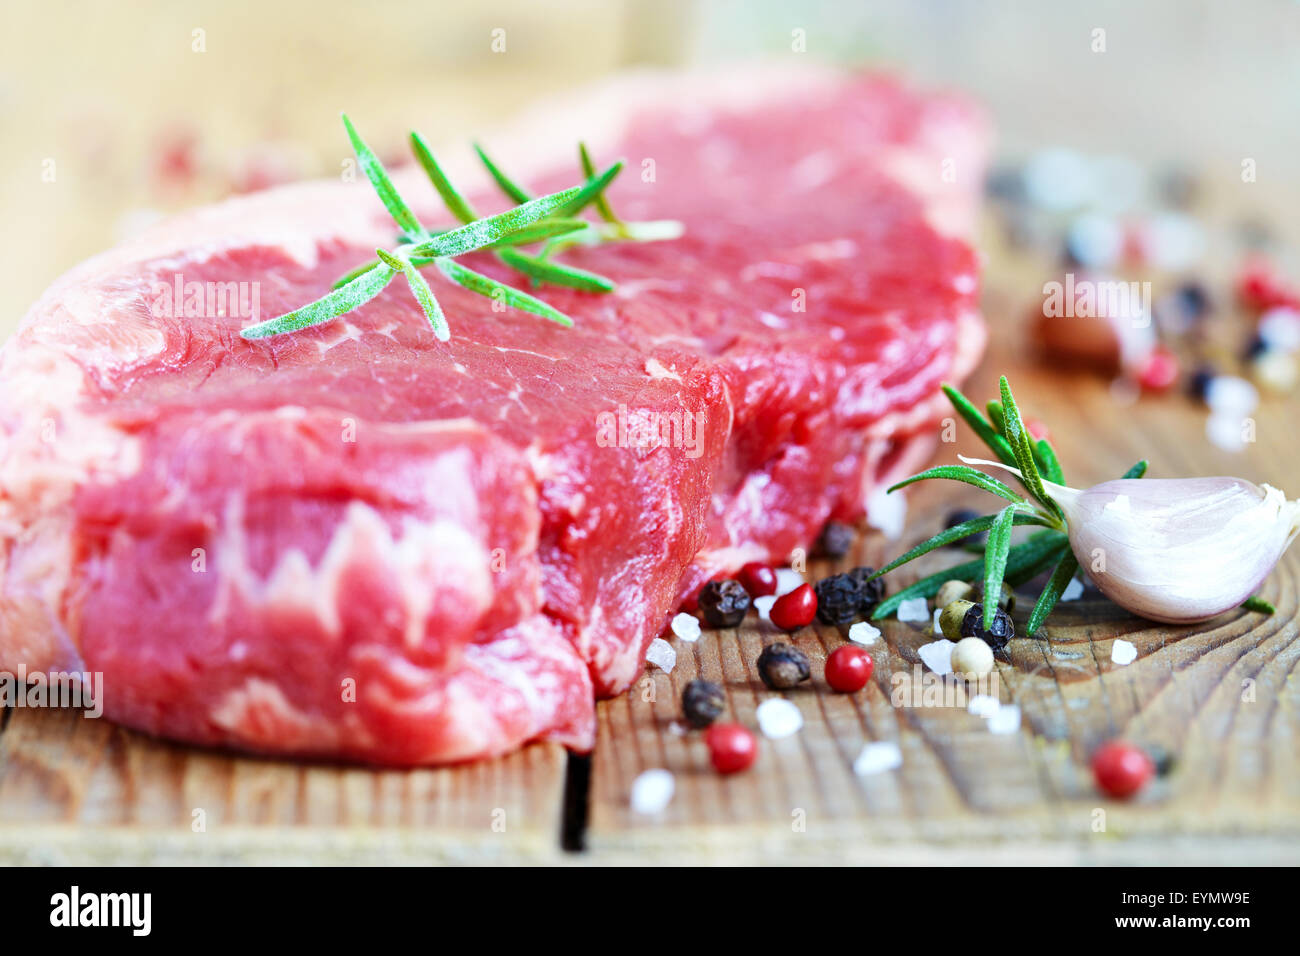 Raw beef meat - Stock Image